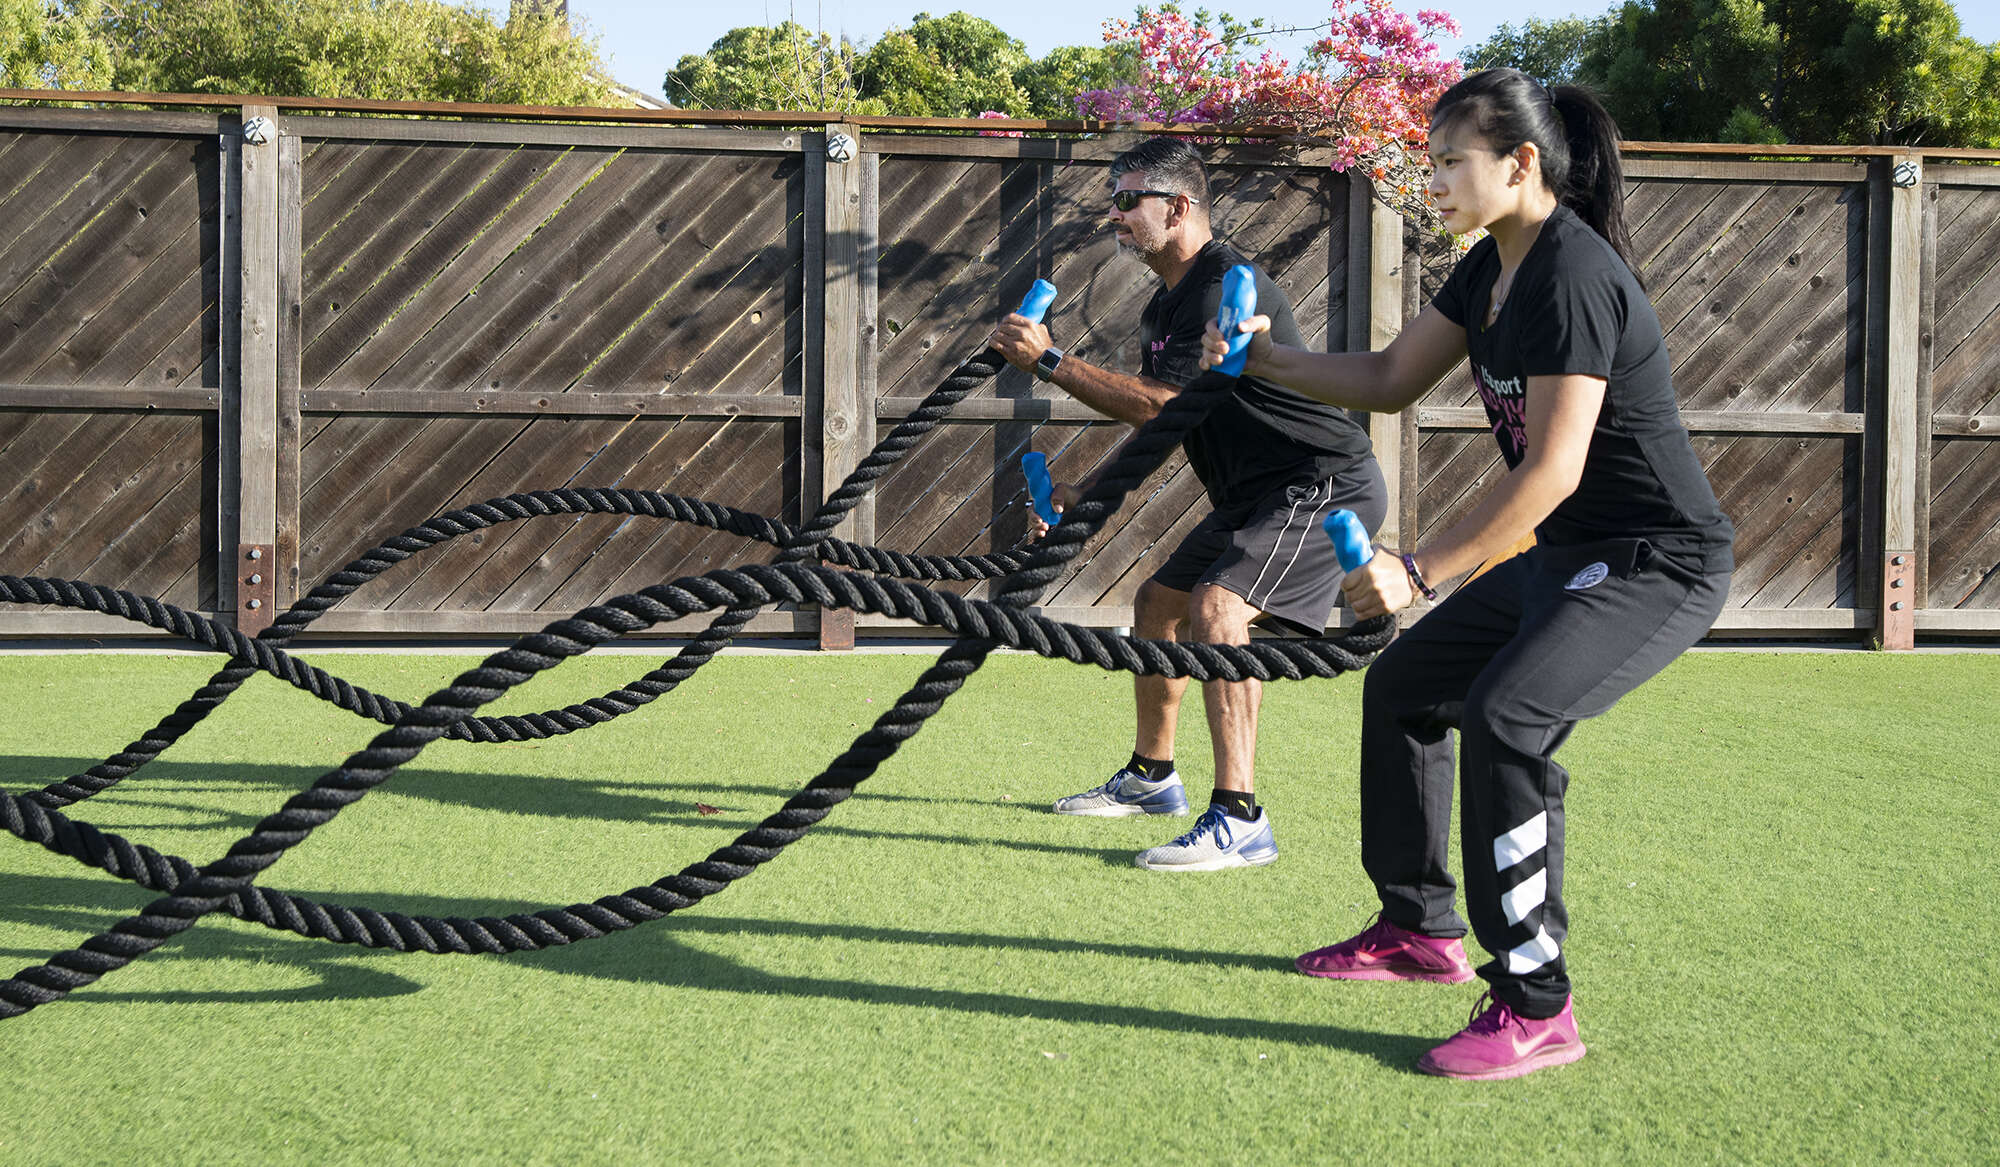 Man and woman tugging rope outdoor exercise class